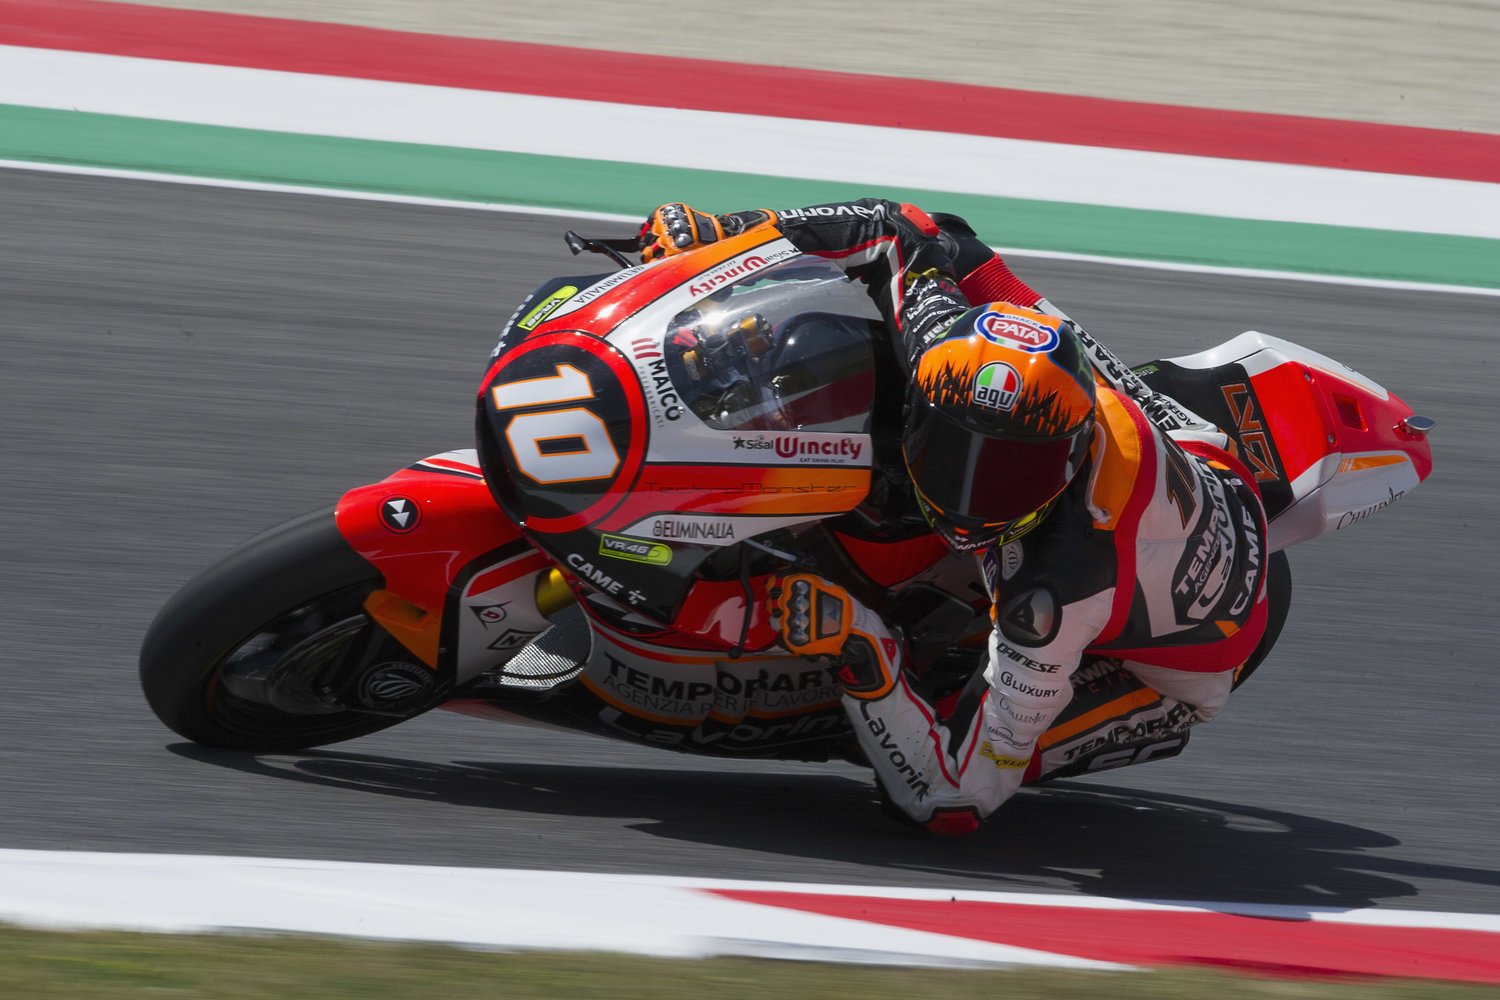 No time to rest for Marini and Baldassarri